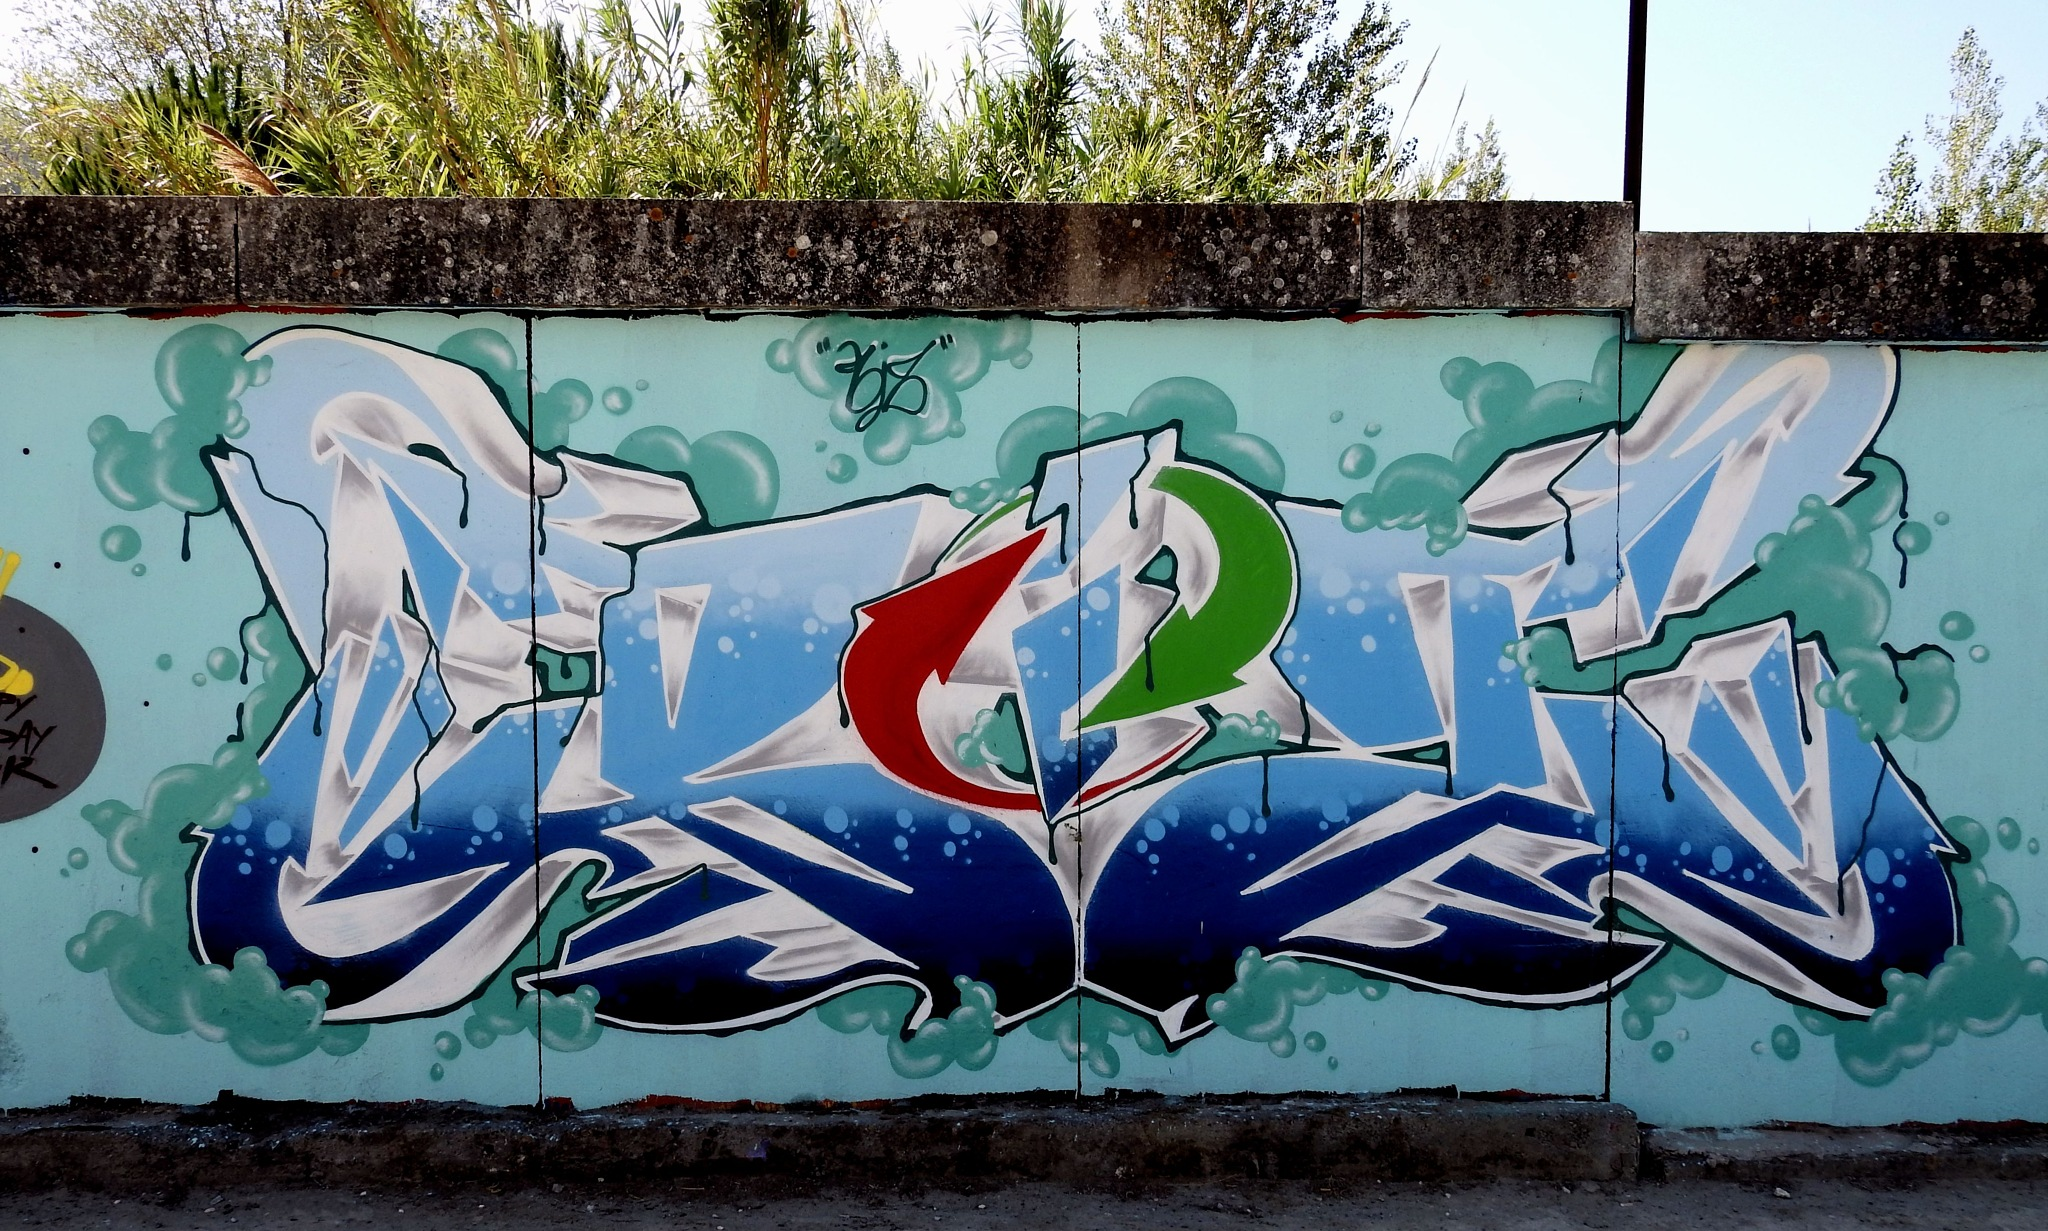 Naples - Italian Flag? No, Street Art!!! - 02  by Arnaldo De Lisio